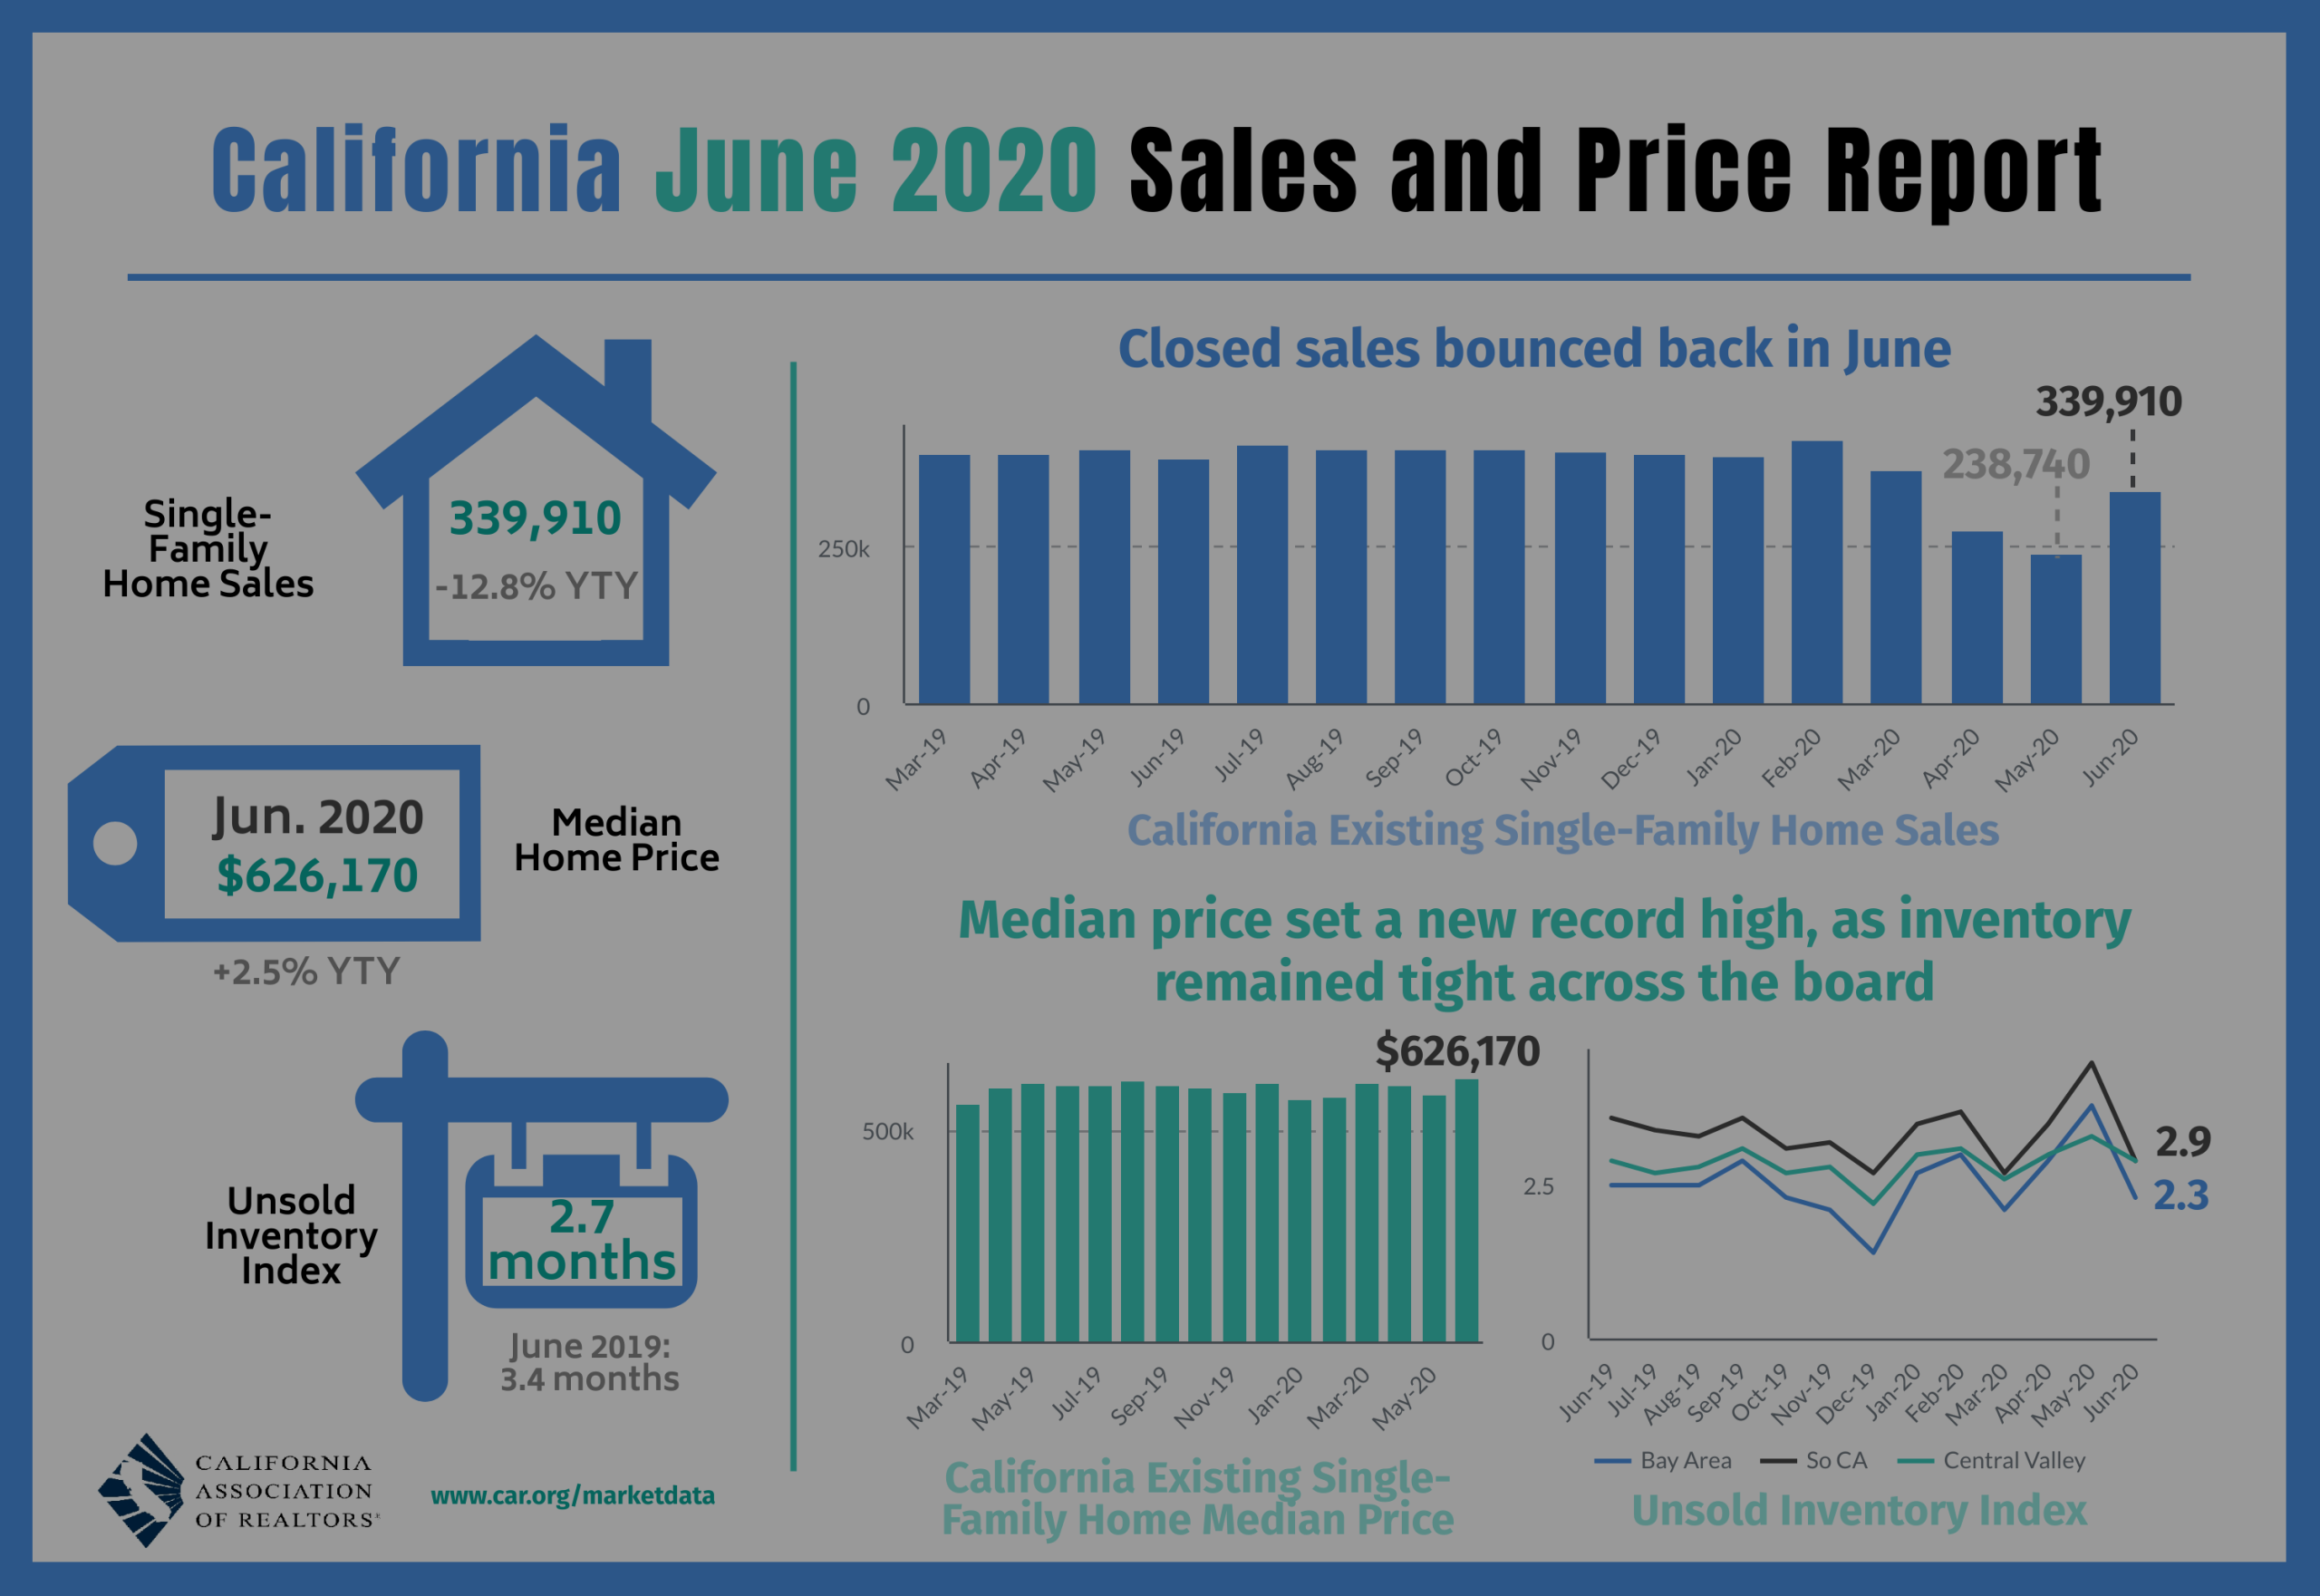 San Diego July Housing Sales & Pricing